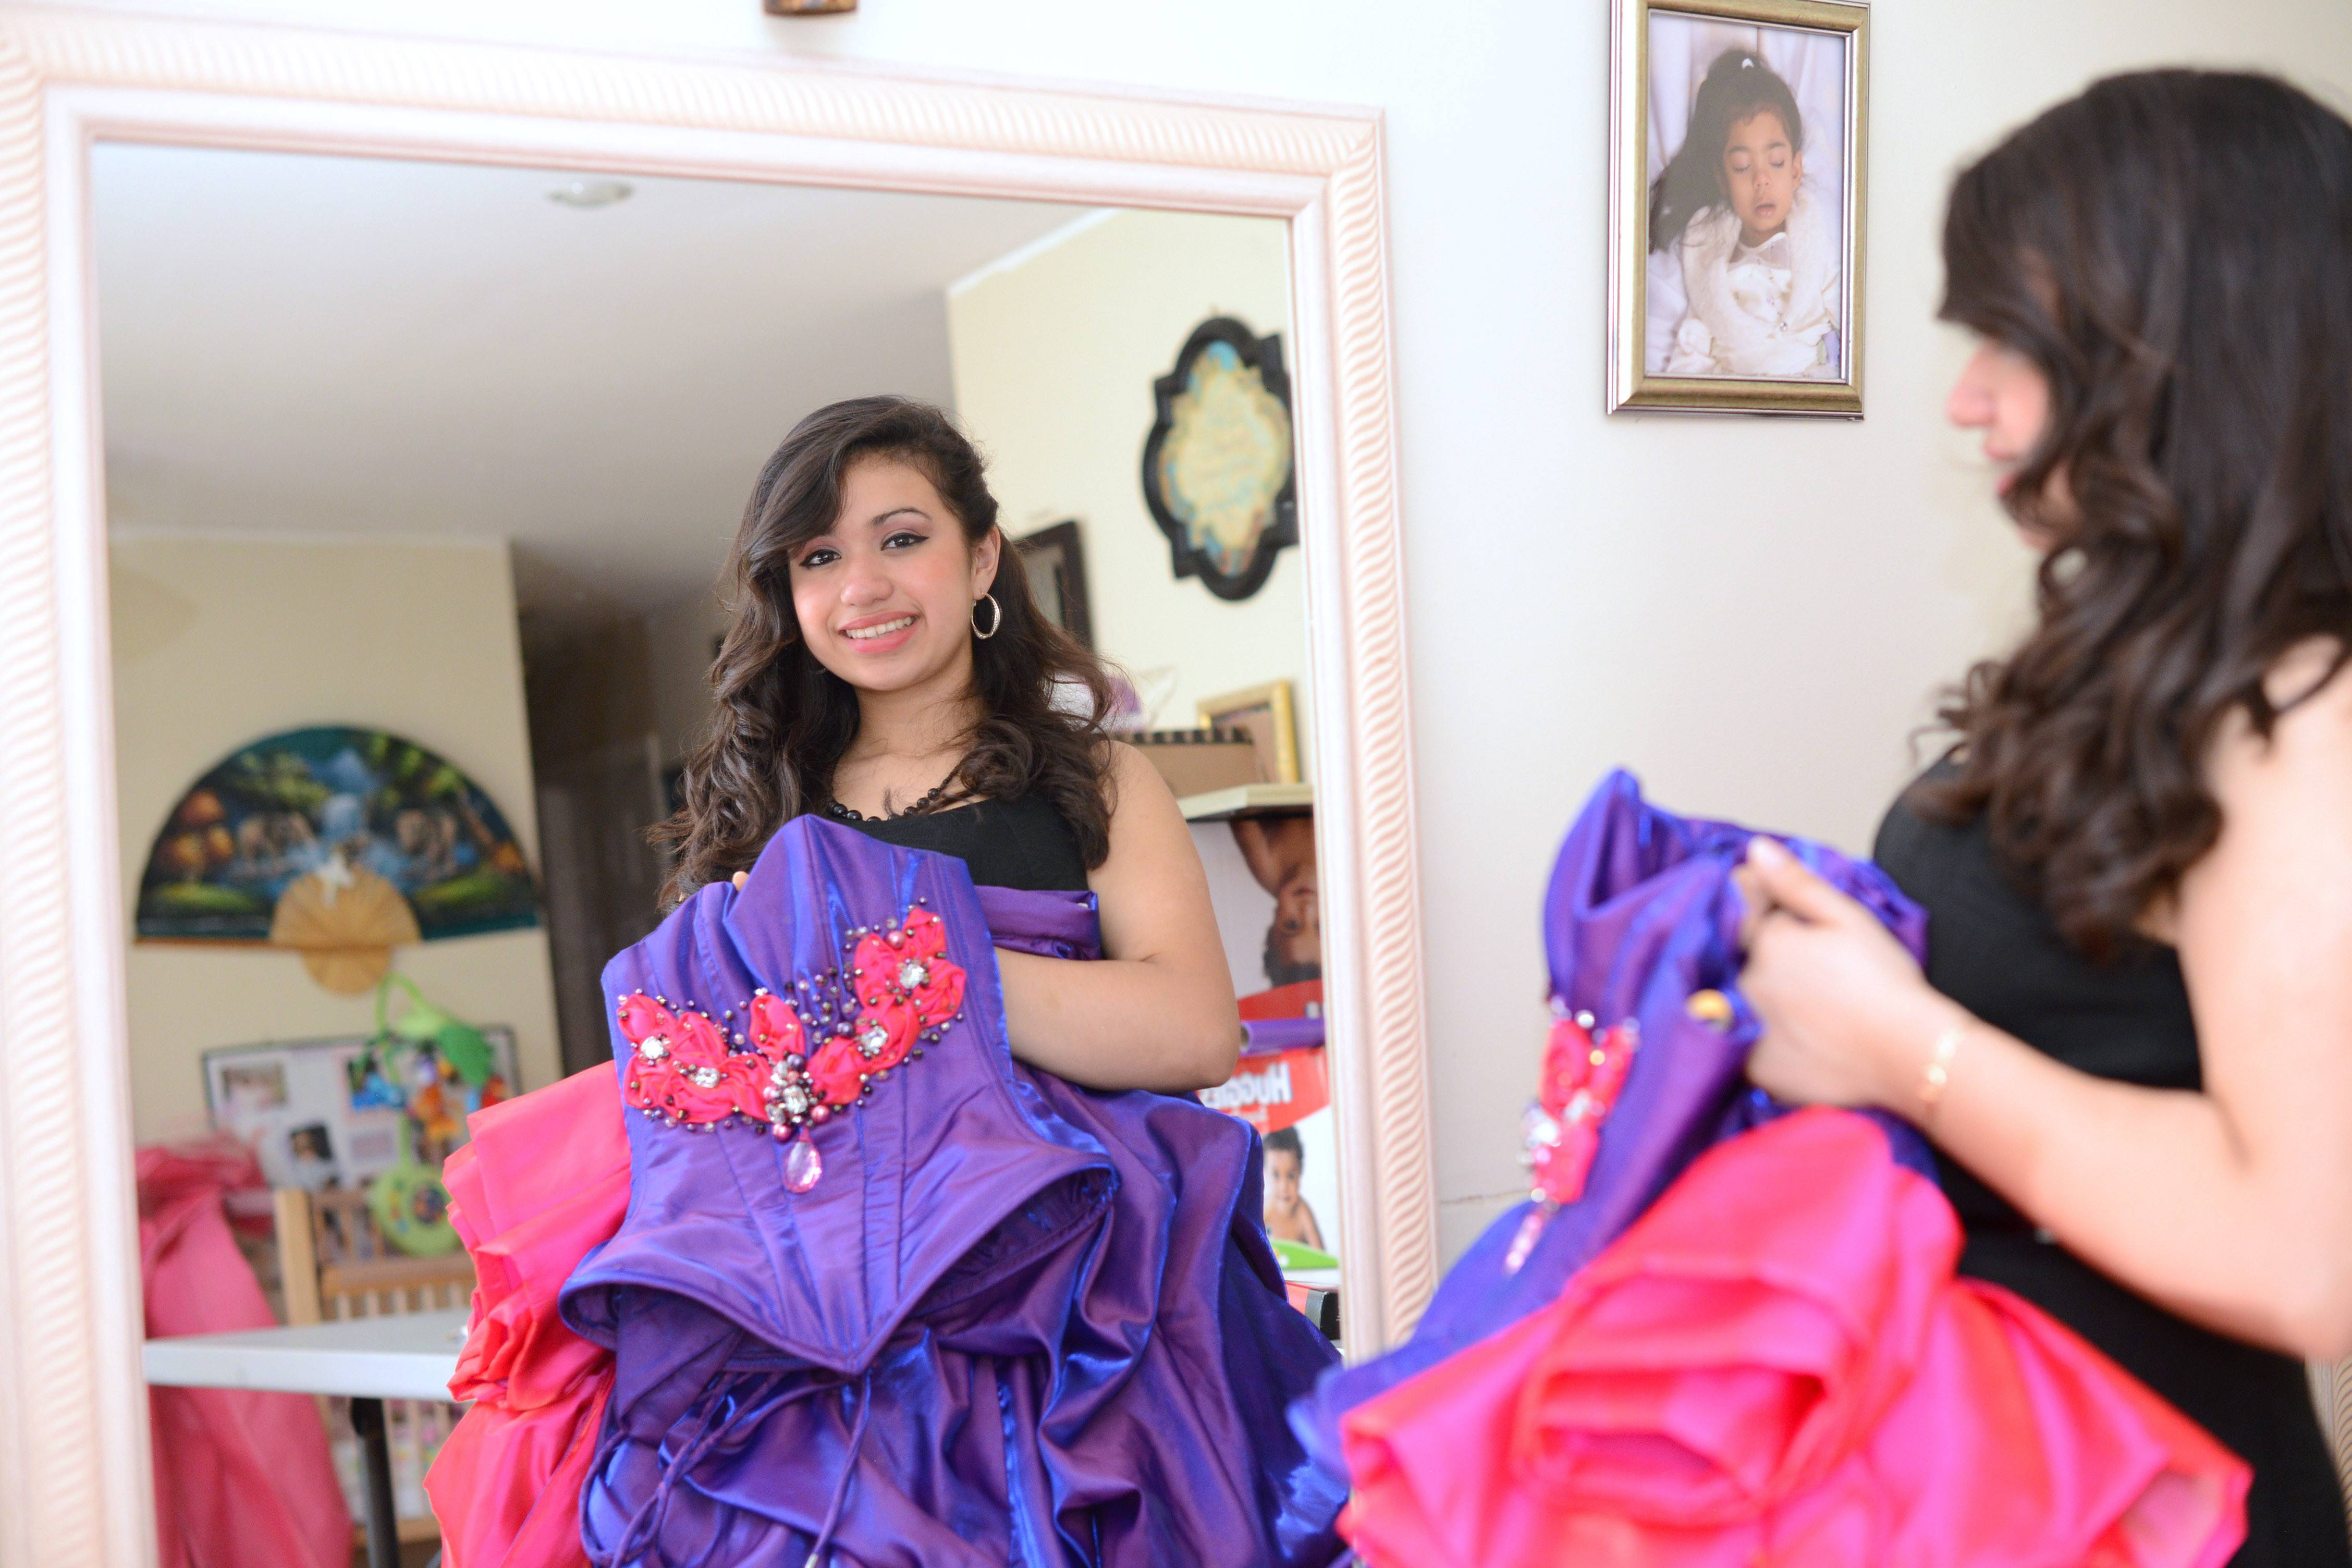 Mom gets a quinceañera to daughter who always helped sick sister